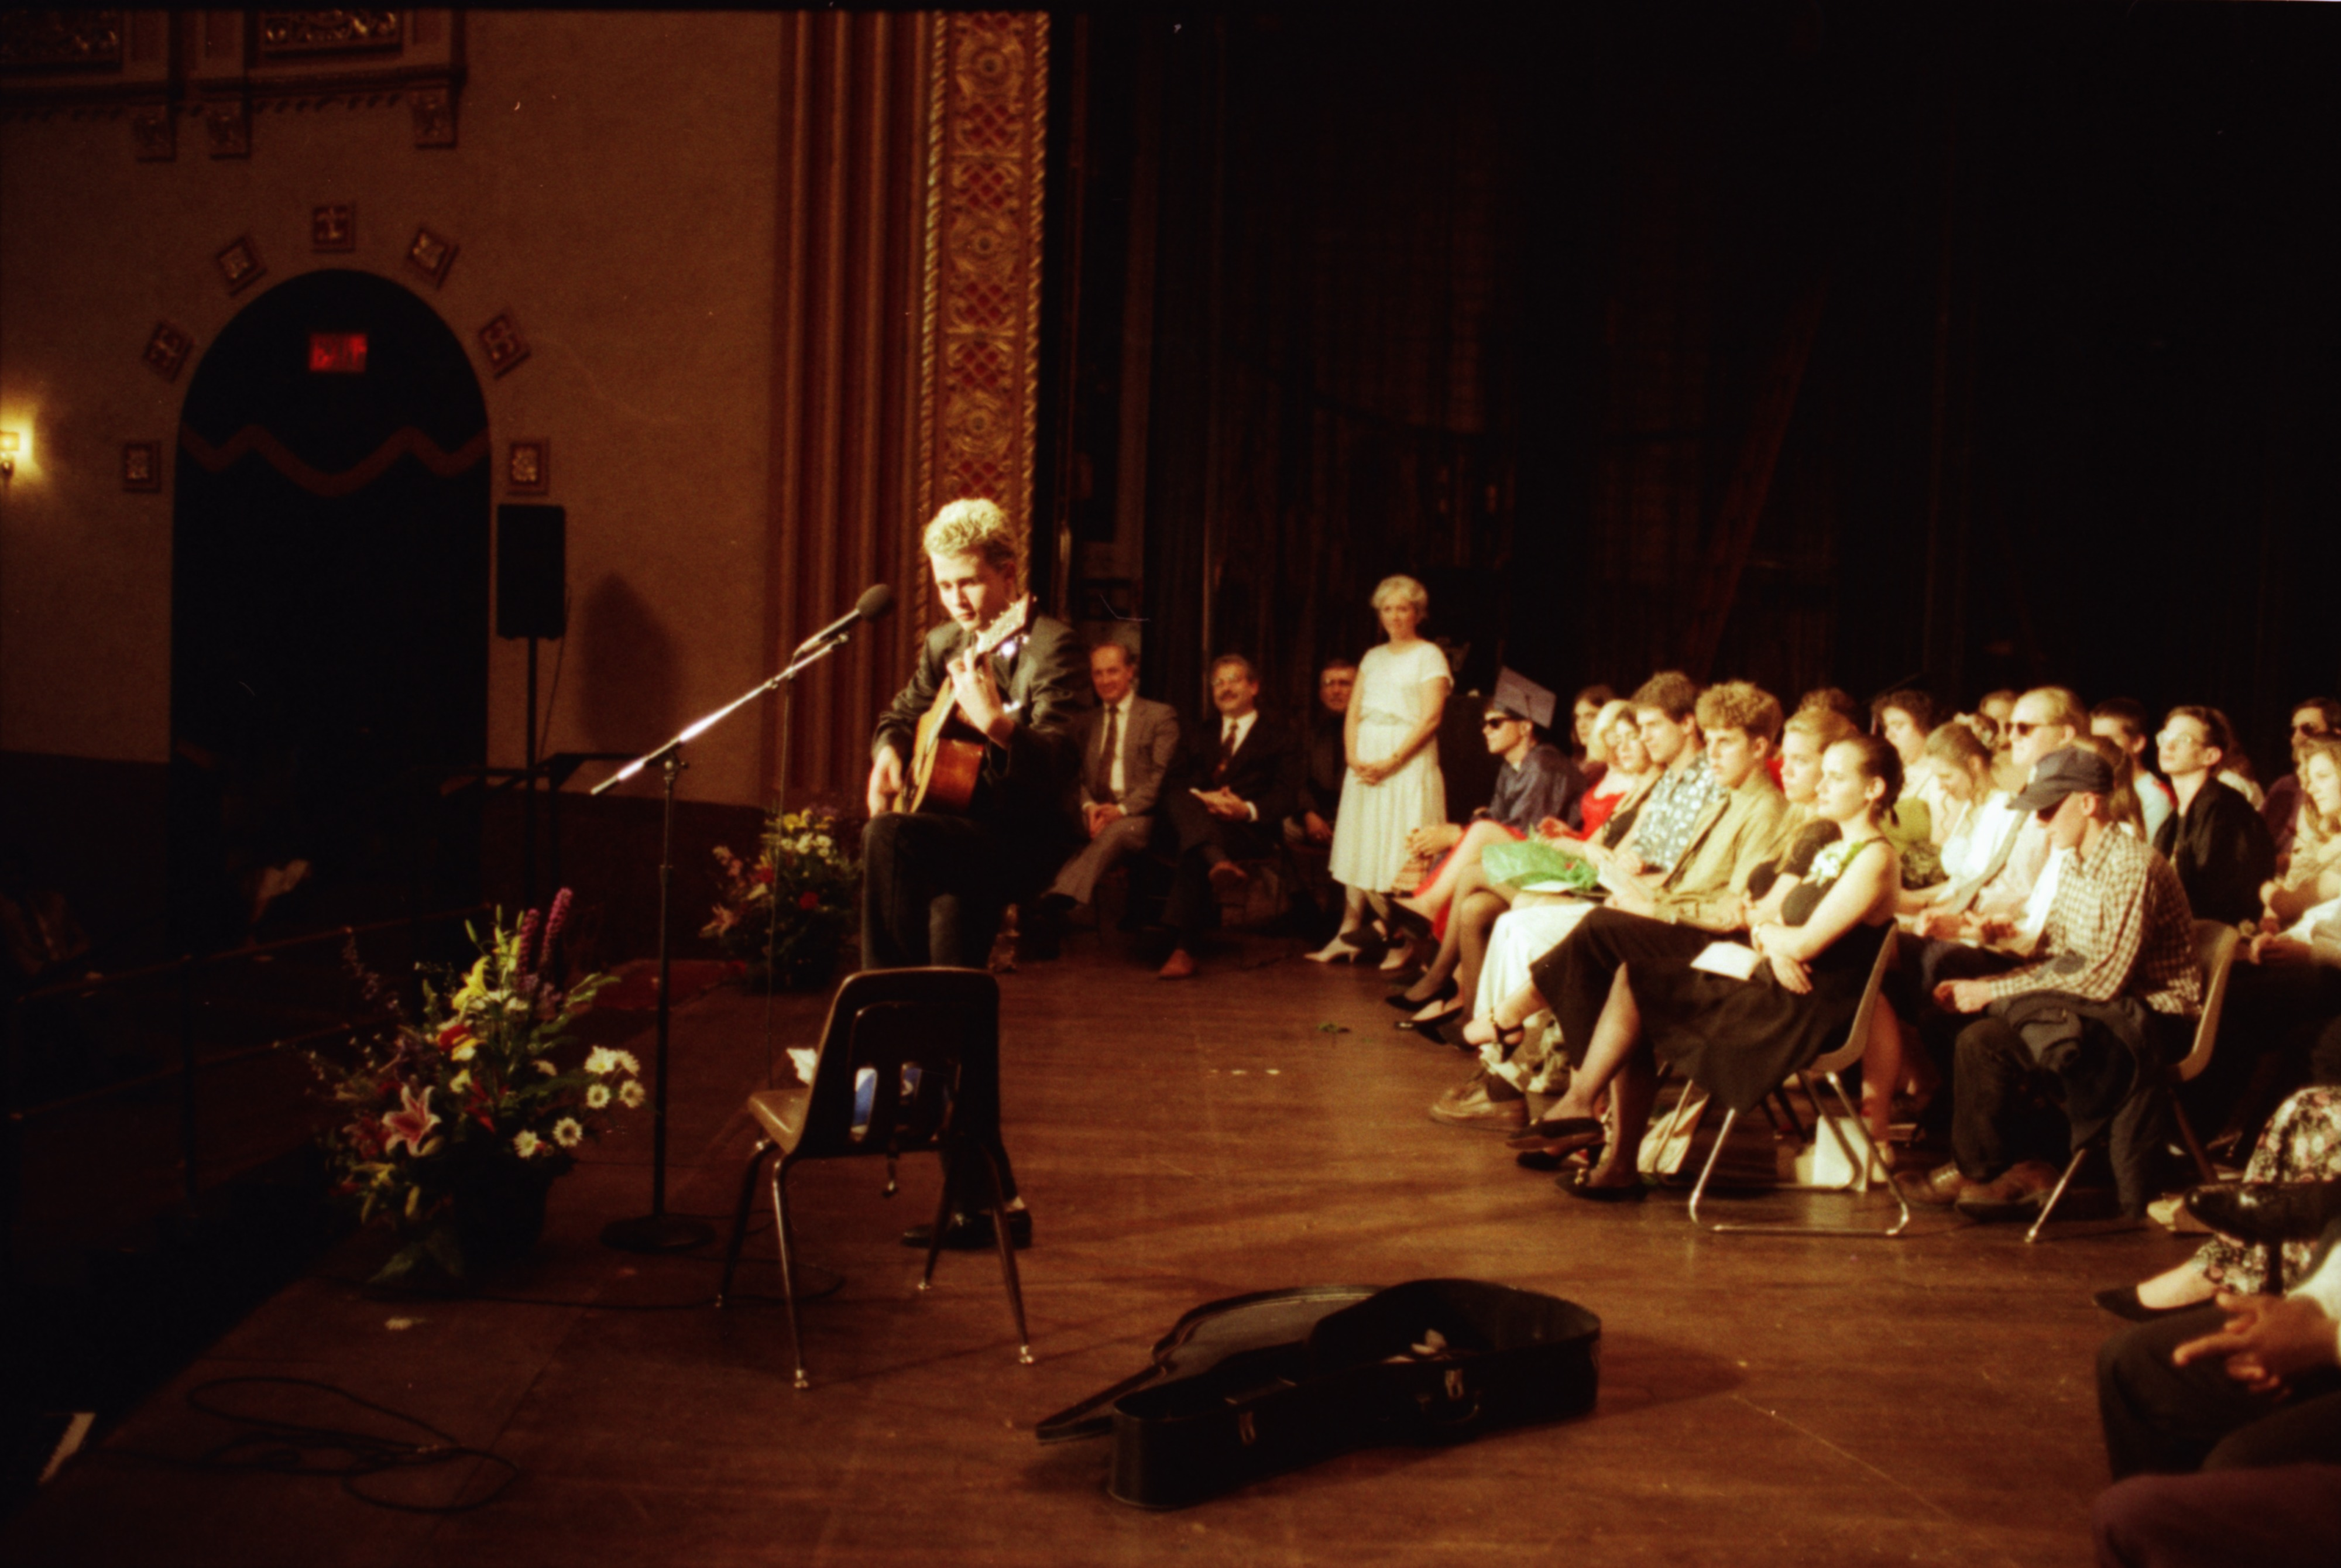 Class of '93 Student Plays Guitar At Community High School Graduation, June 1993 image